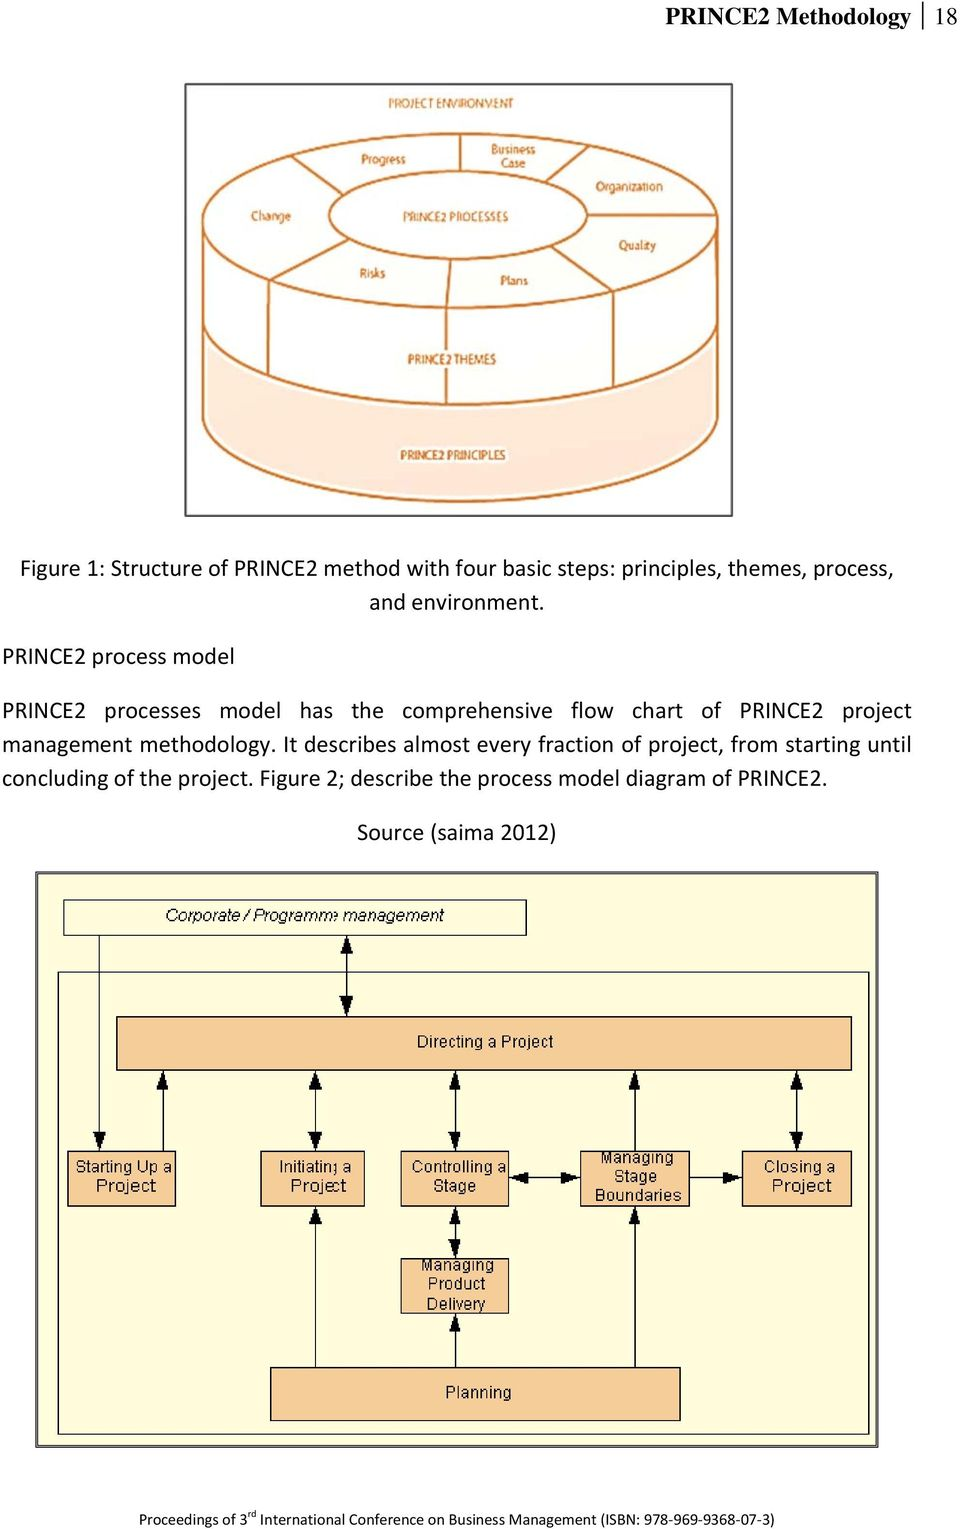 PRINCE2 process model PRINCE2 processes model has the comprehensive flow chart of PRINCE2 project